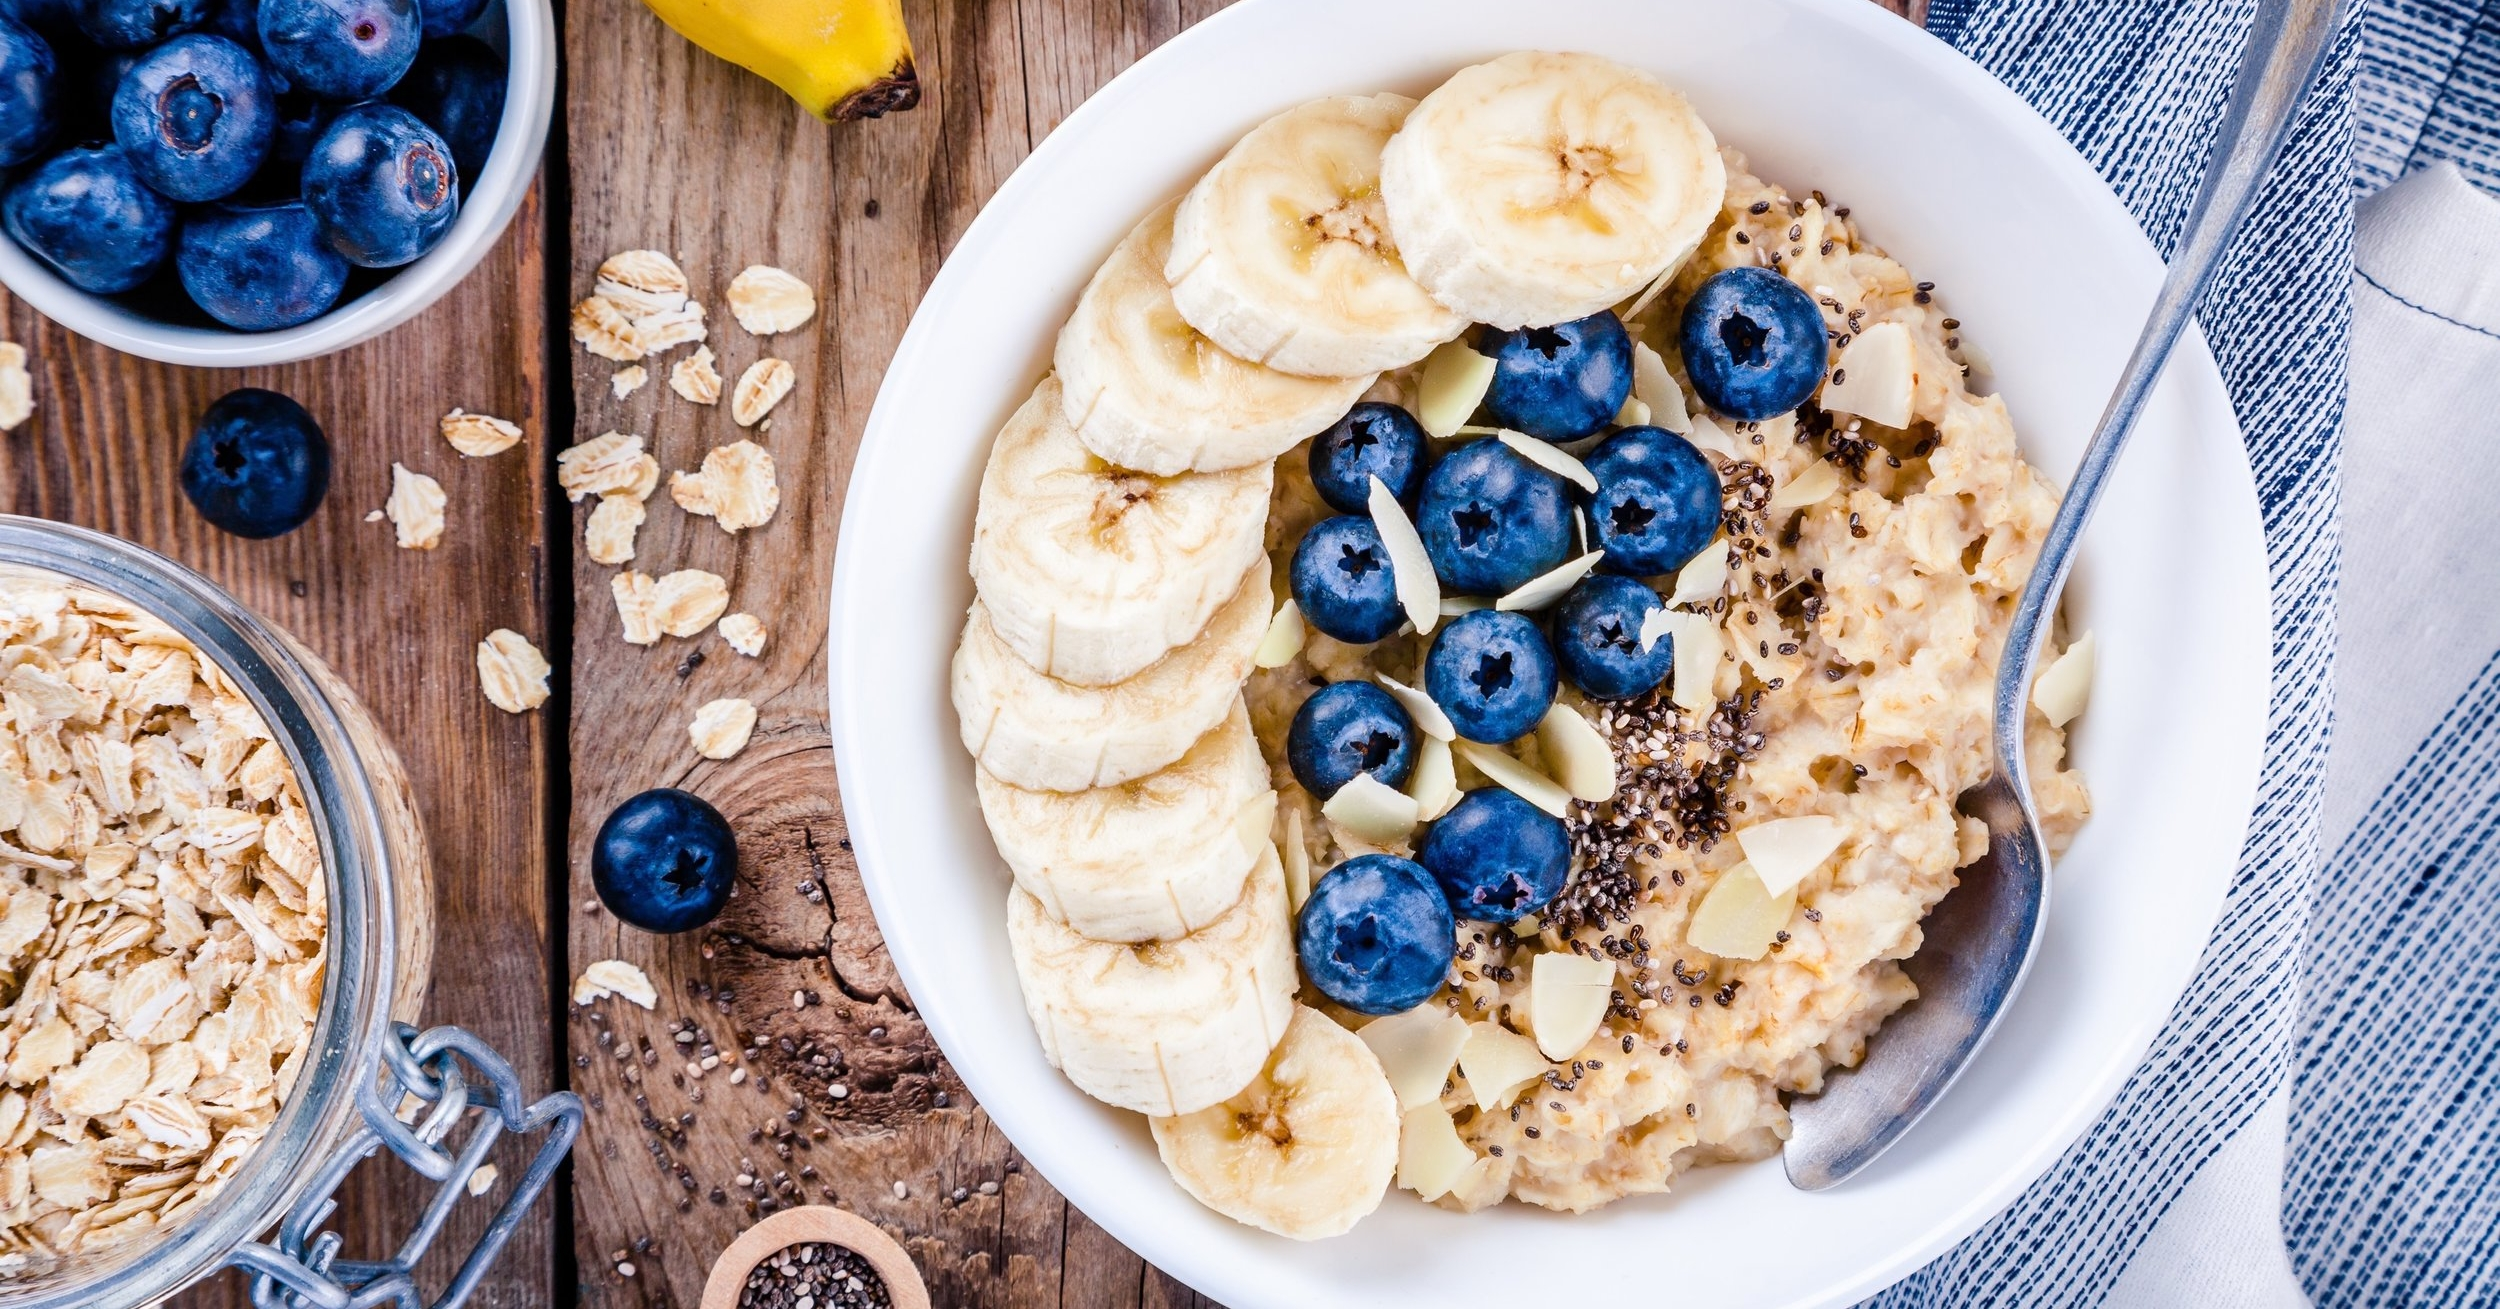 Plant-based breakfast oatmeal, healthy fats, nuts, almonds, berries, granola and vegan brunch ideas.